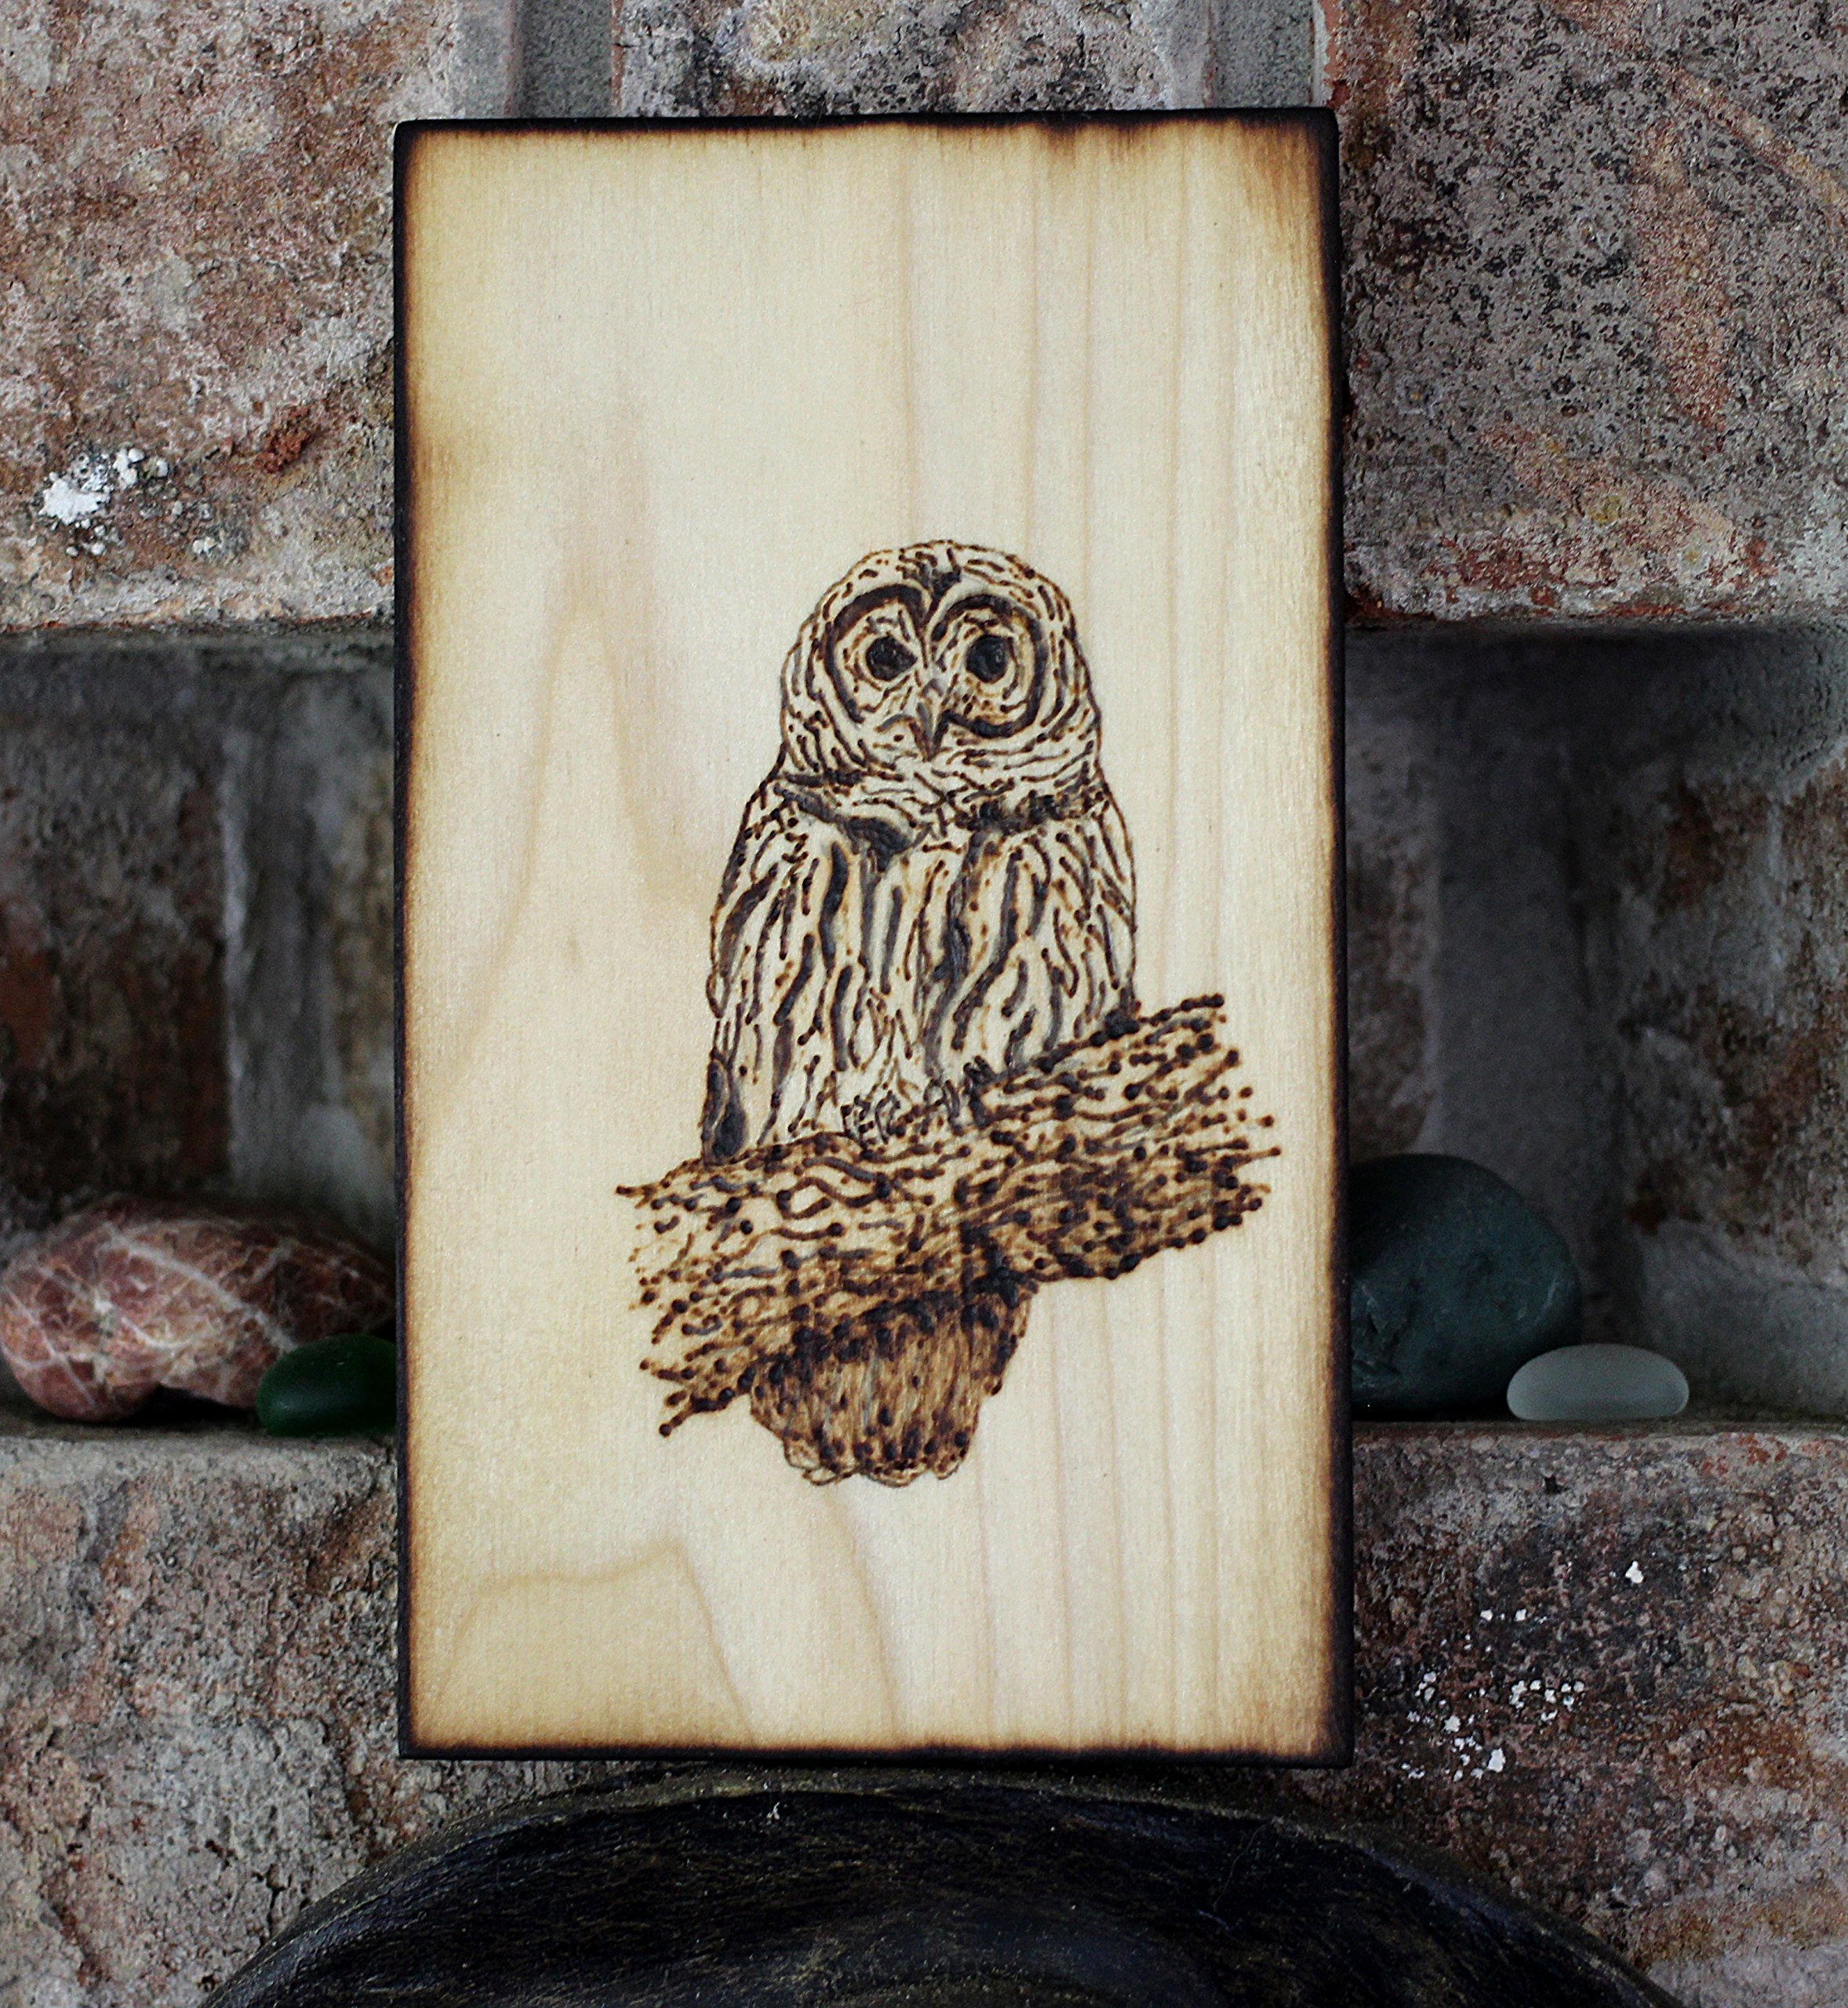 Wood Burned Barred Owl Pyrography Small Woodburned Bird Nature Wildlife Picture